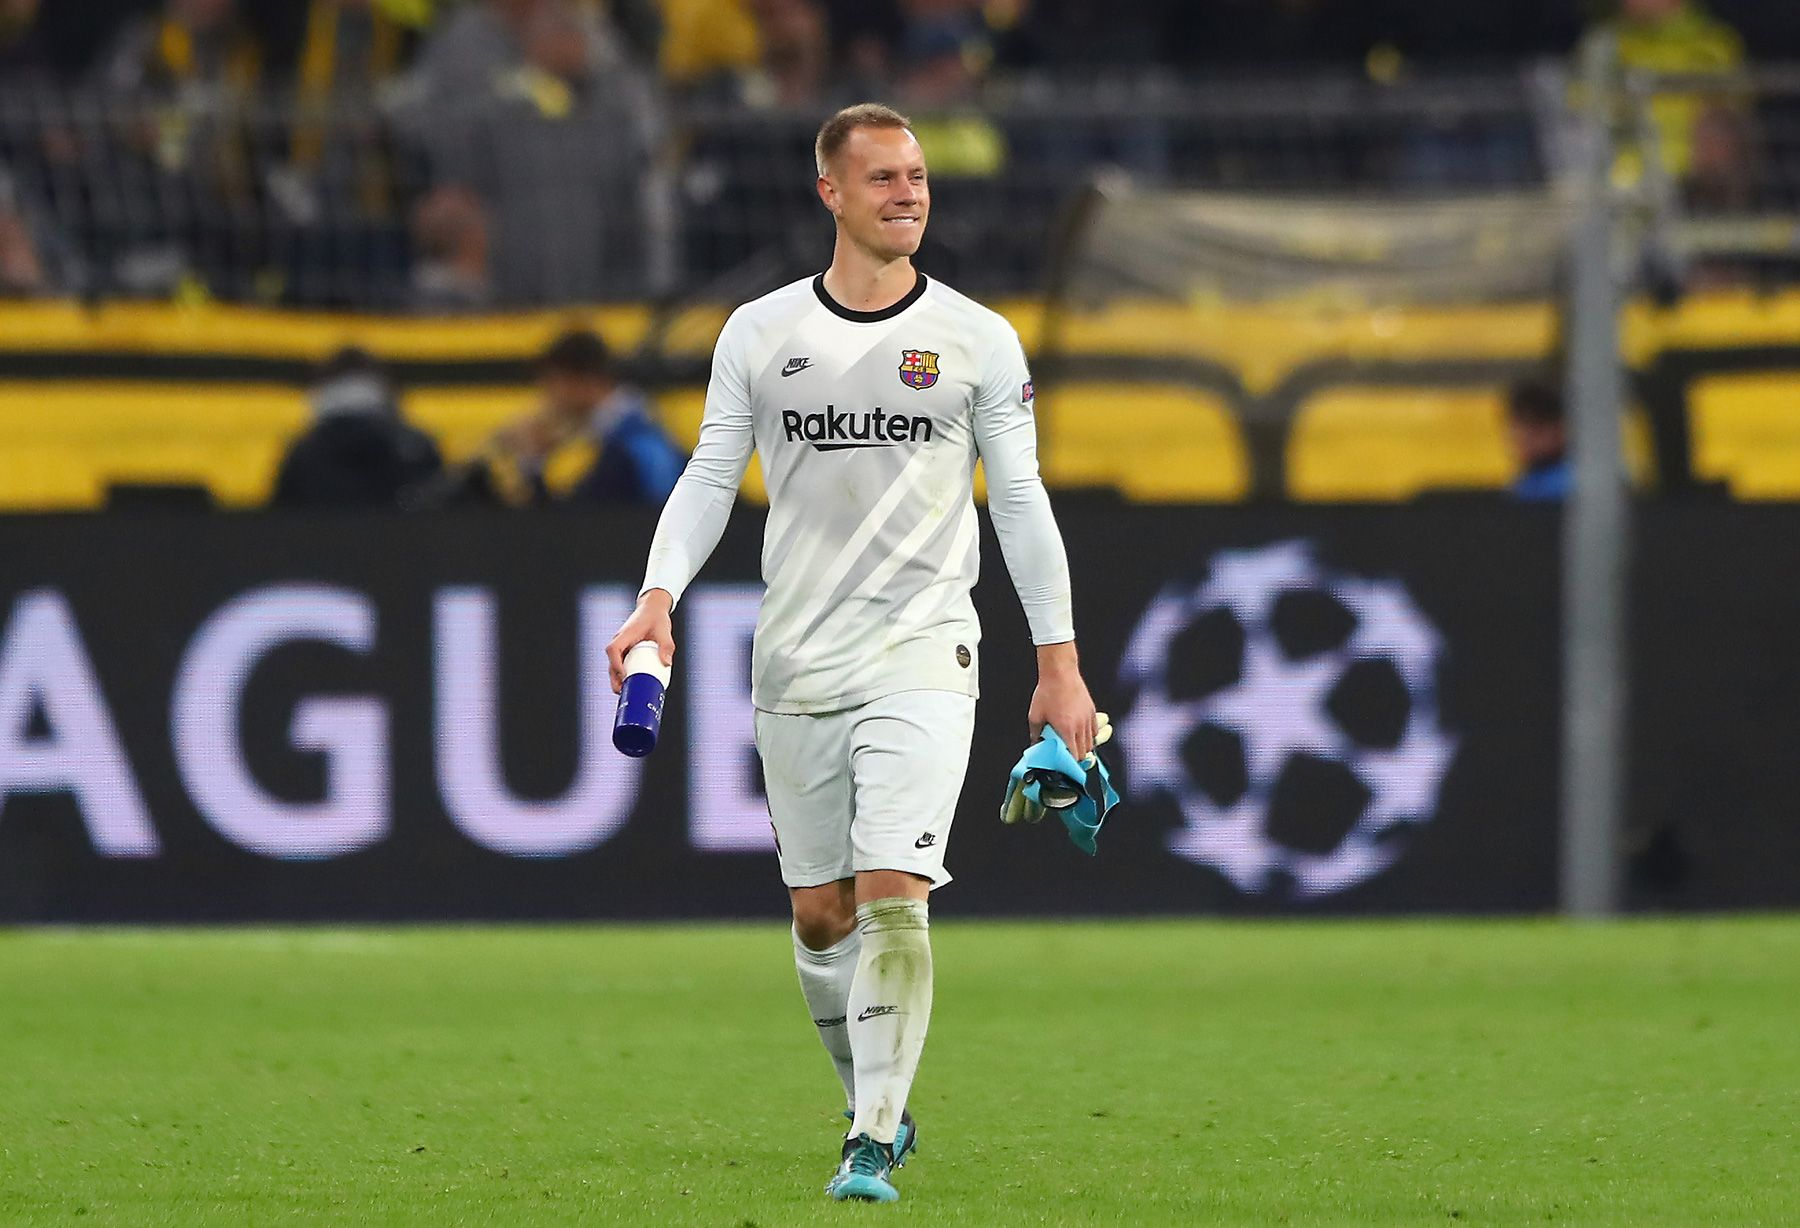 Ter Stegen reaches 120 games in the league with Barça and matches Urruti